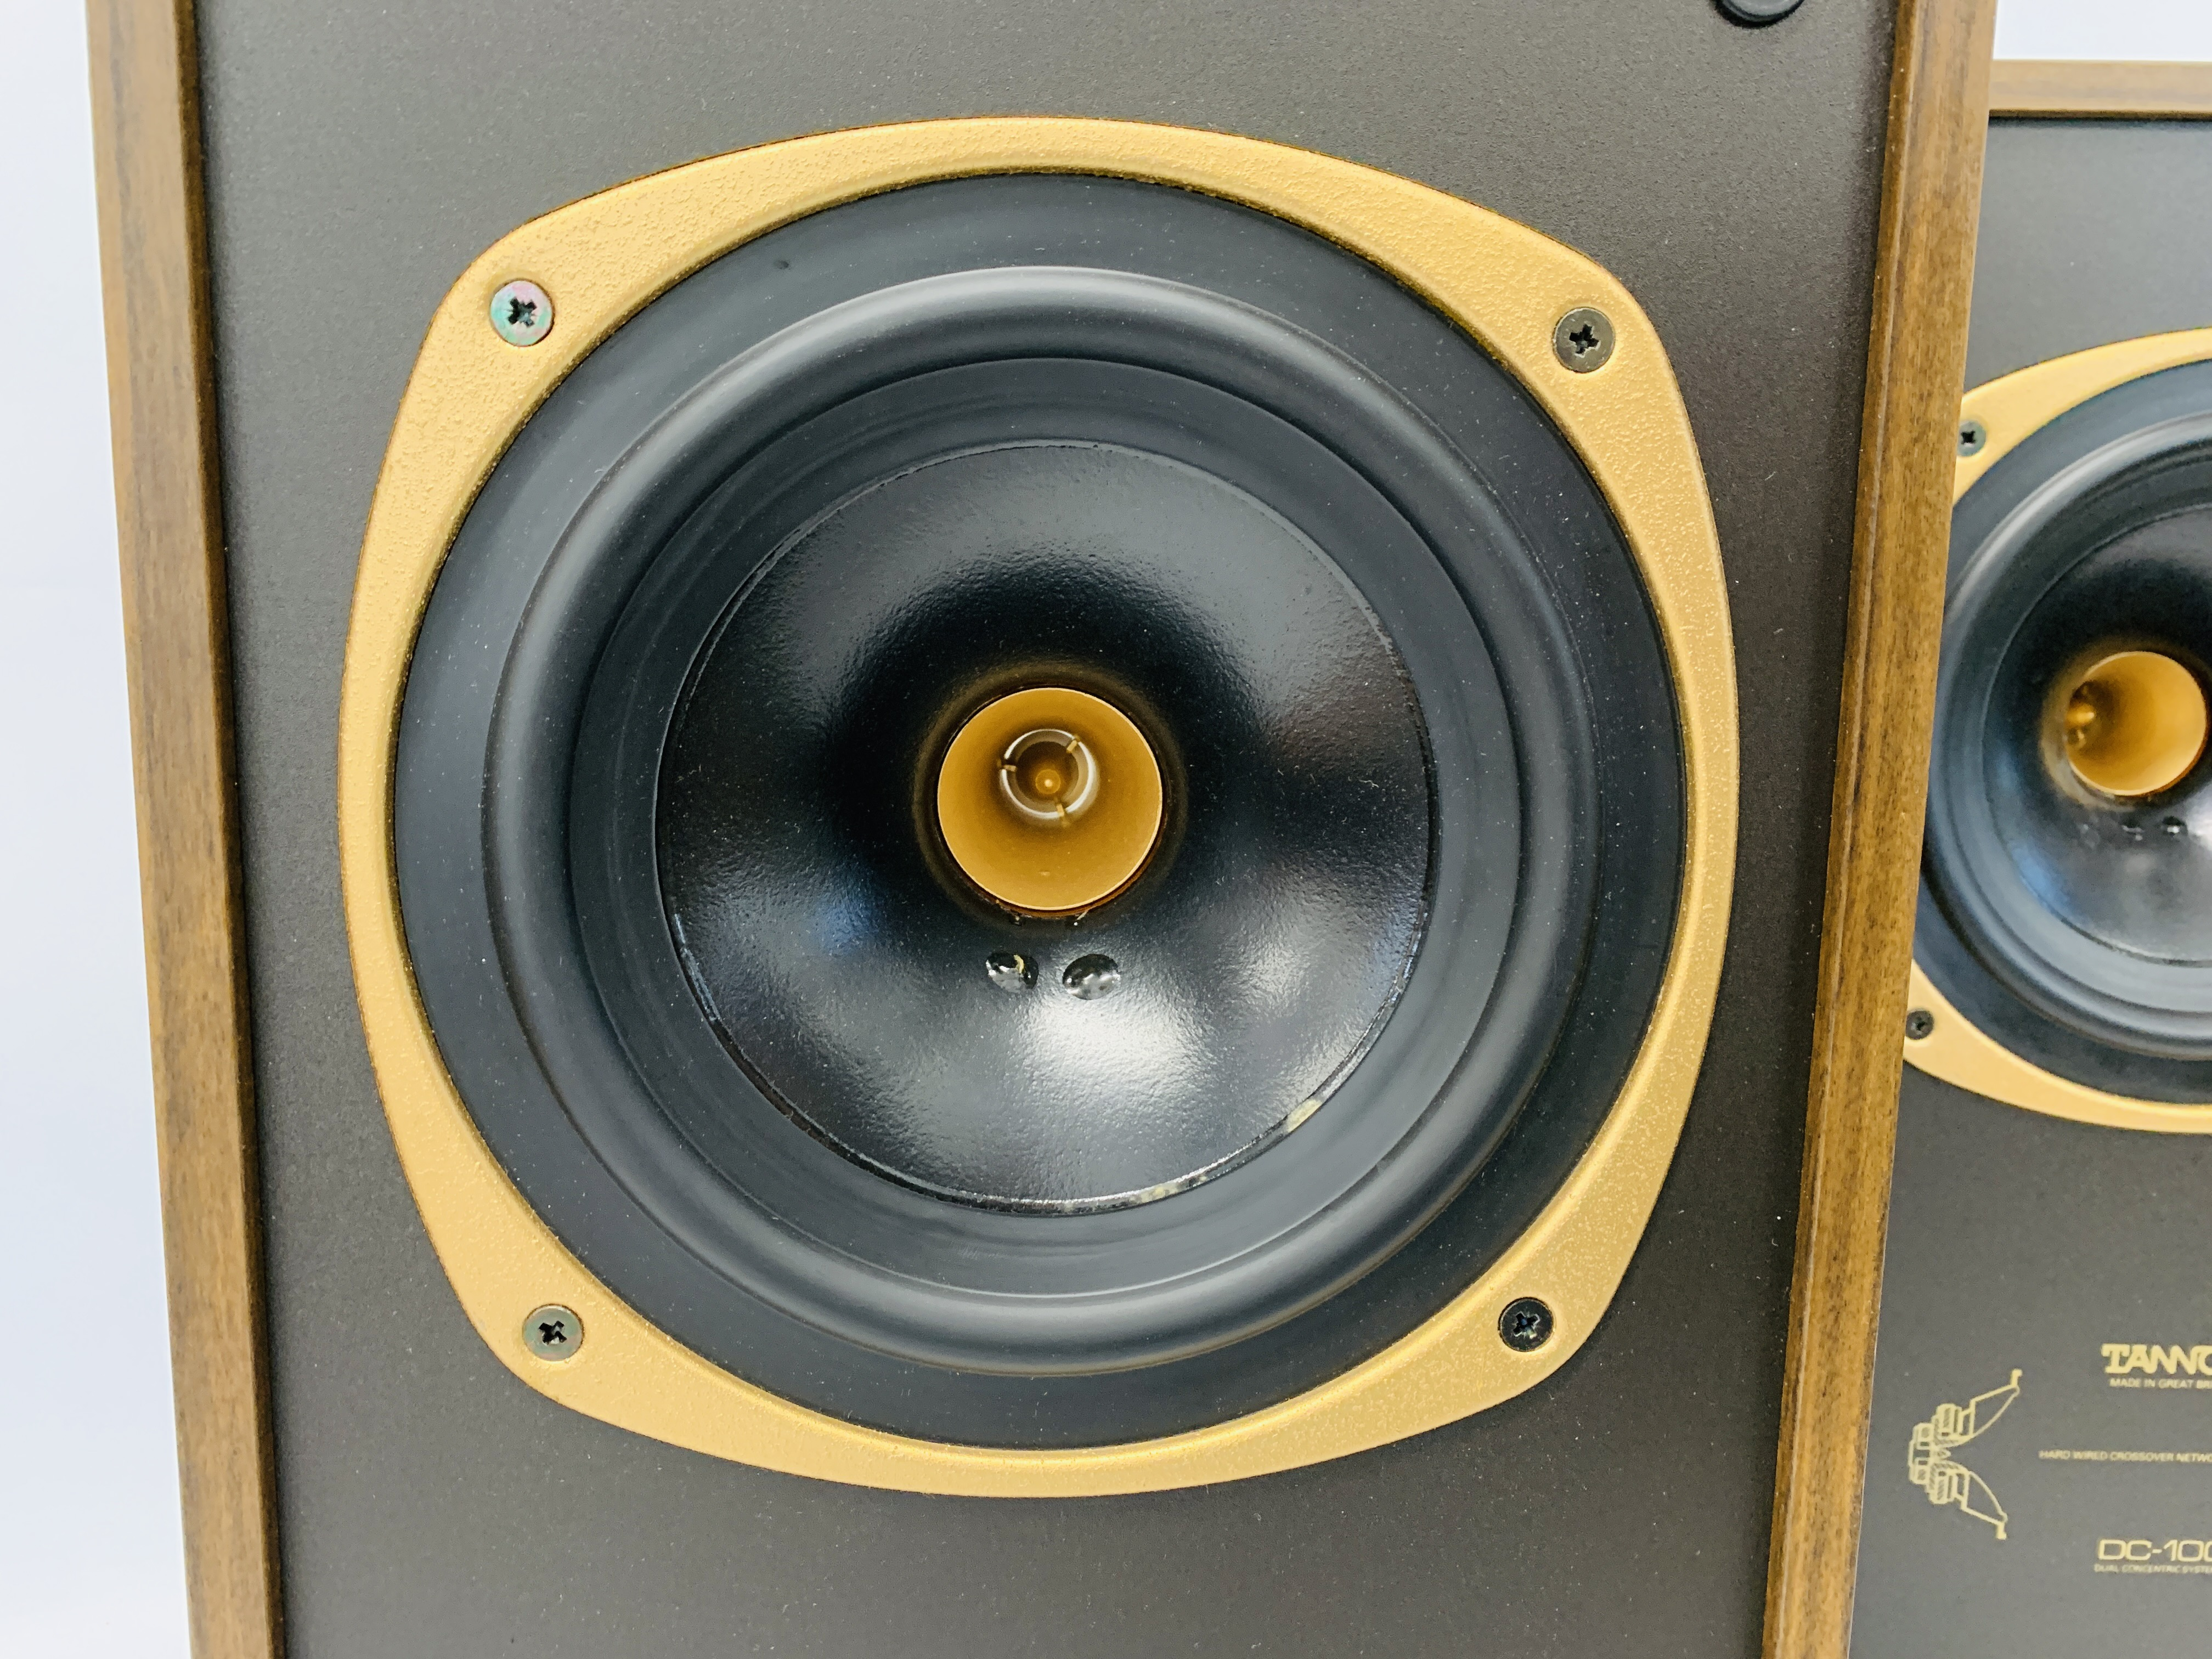 A PAIR OF DC-100 DUAL CONCENTRIC LOUD SPEAKERS - SOLD AS SEEN - Image 5 of 12